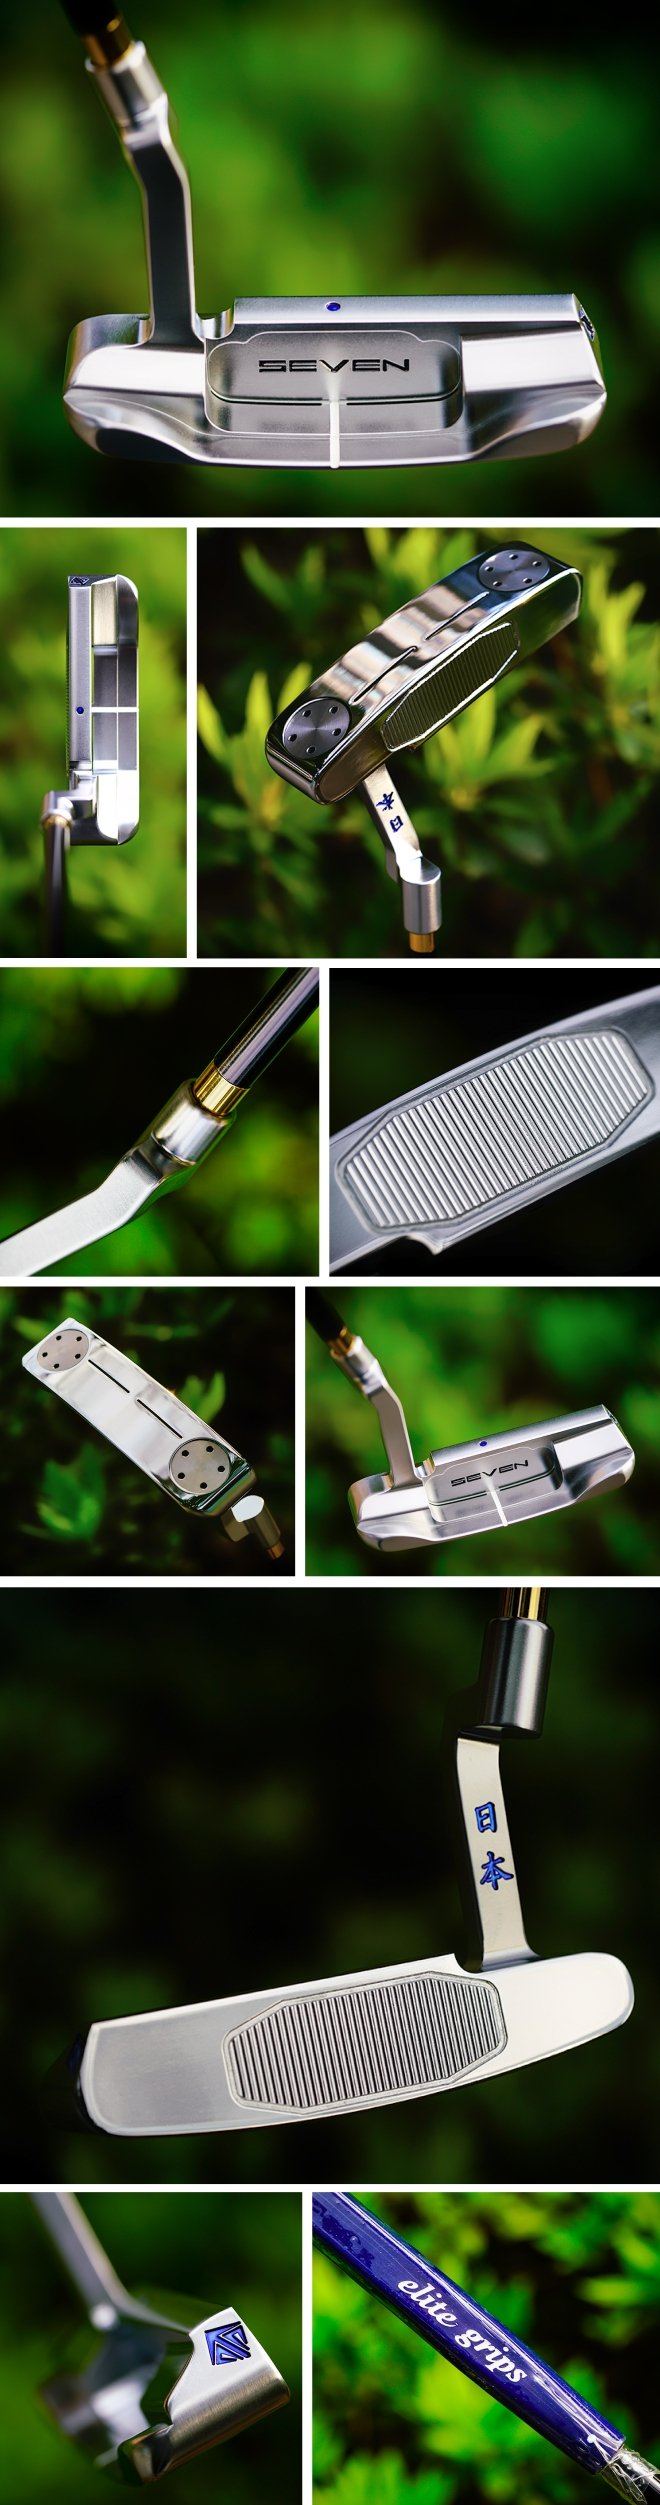 Seven X Golds Factory Dual Slit Putter